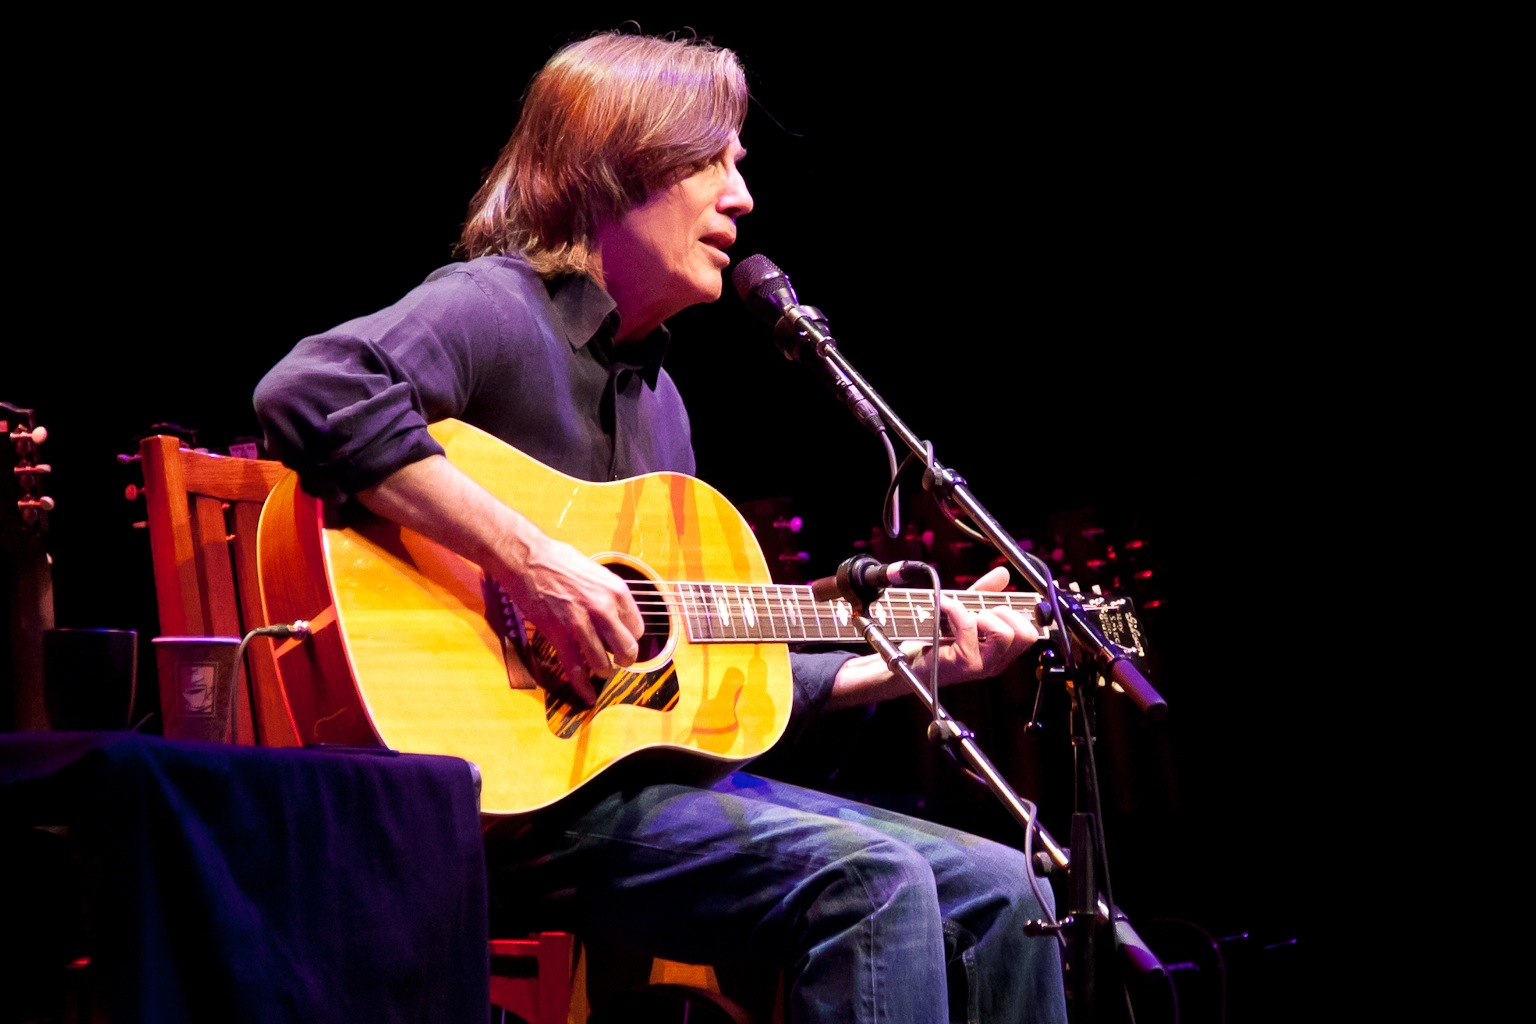 Jackson Browne Married Minimalist february 2017 – yeah, another blogger